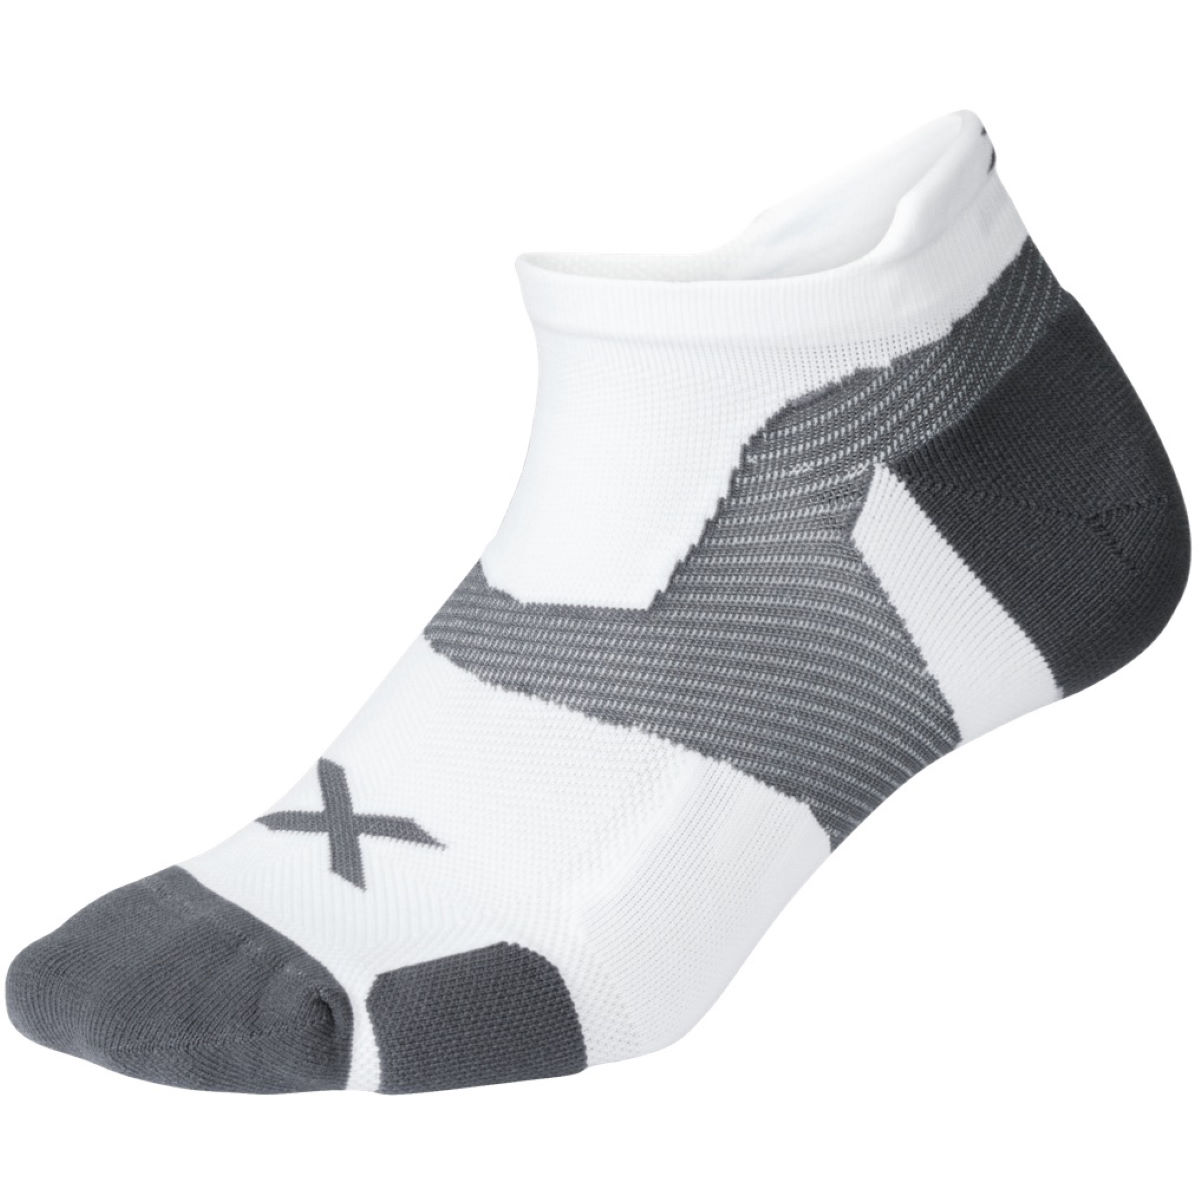 Chaussettes 2XU Vectr Cushion No Show (blanches) - S Blanc/Gris